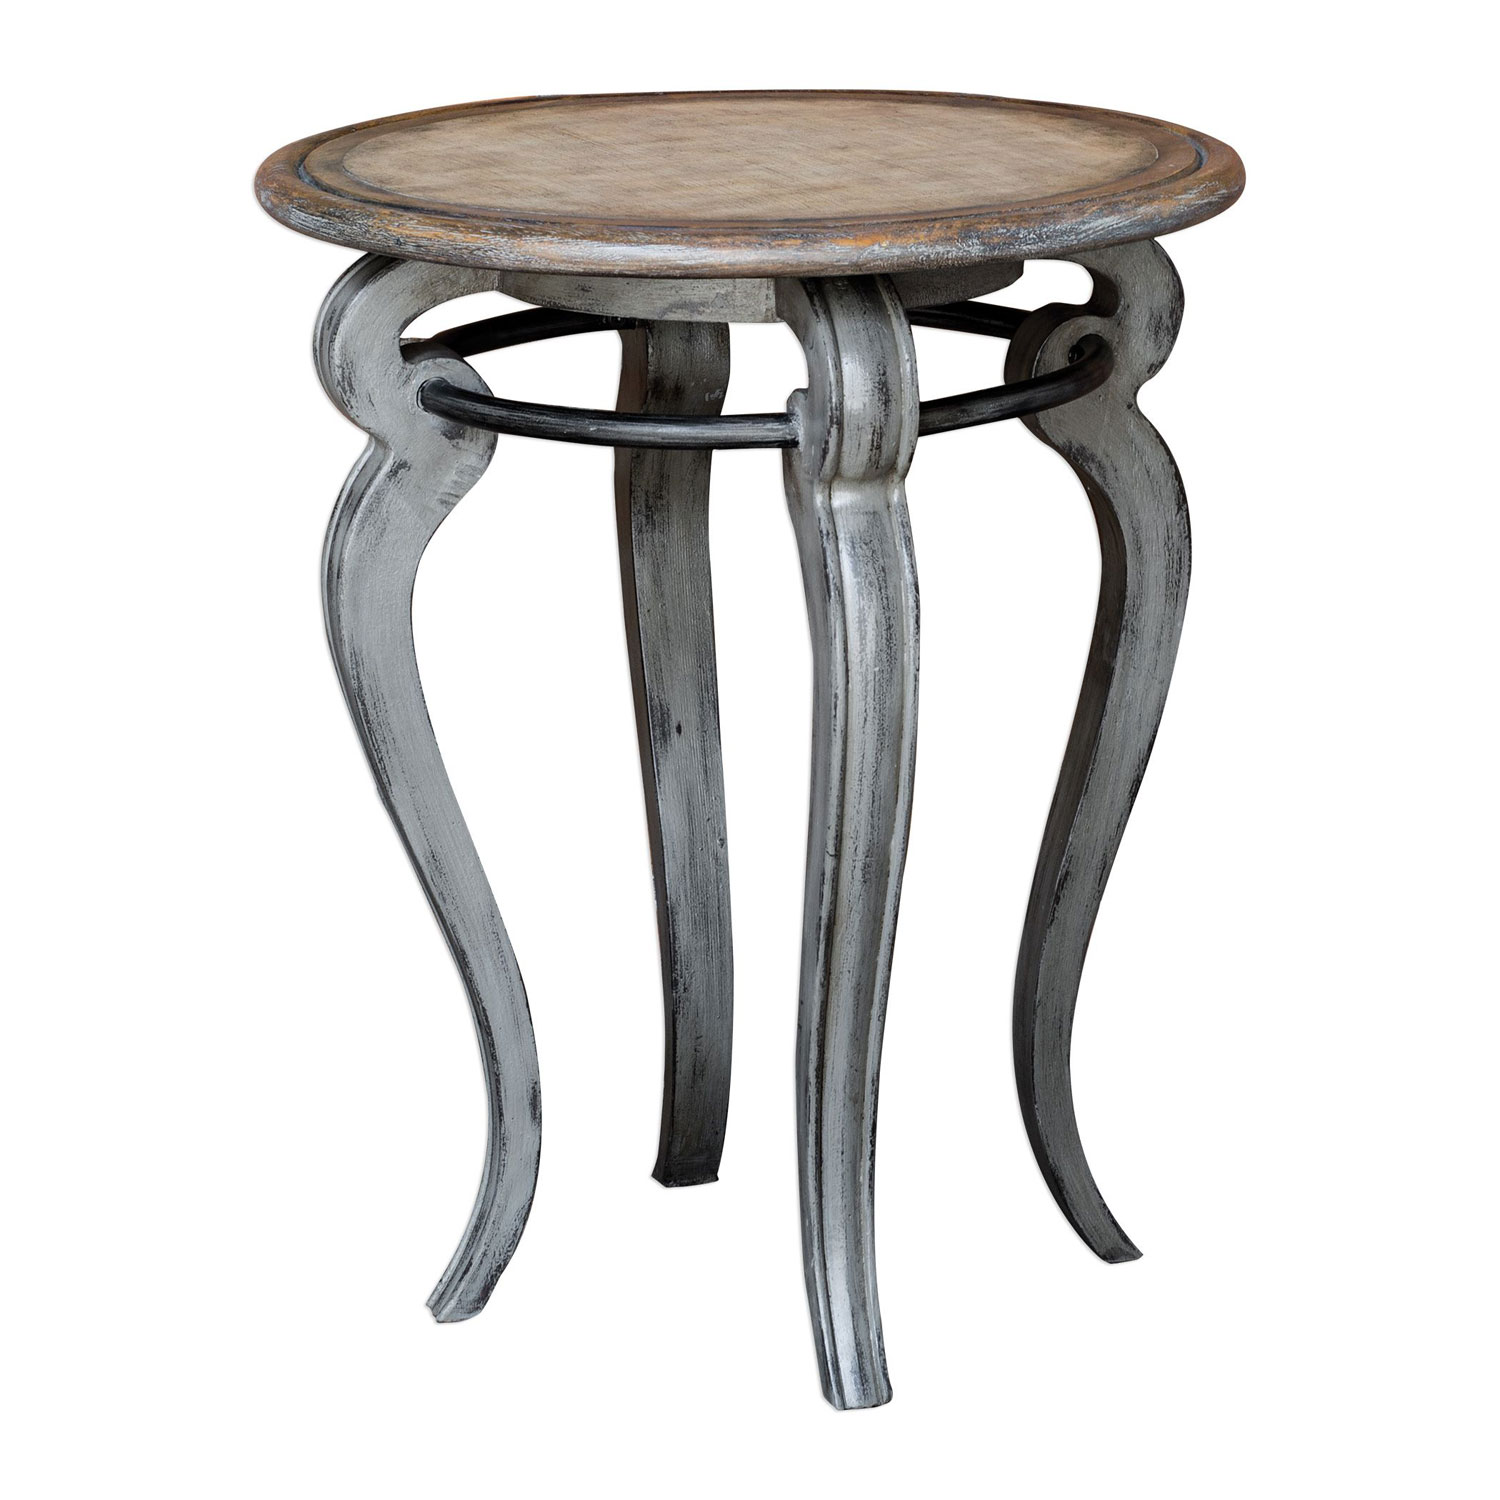 uttermost mariah round gray accent table bellacor hover zoom modern pedestal small console chest double pedal drum black iron bedside grill chef wood coffee with drawers